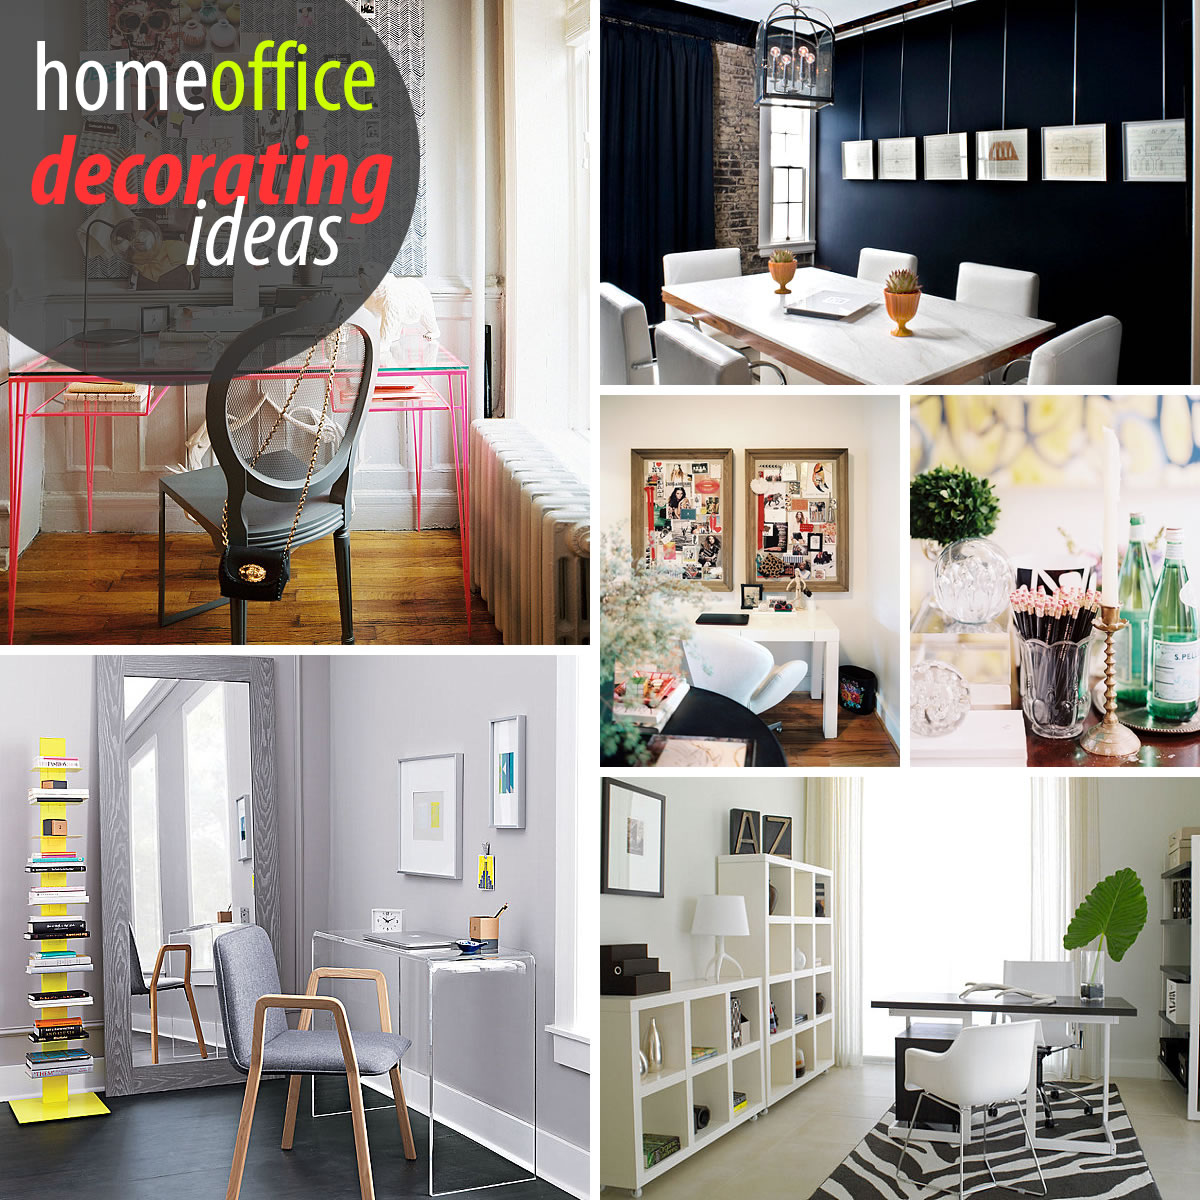 Creative home office decorating ideas for Office room decoration ideas